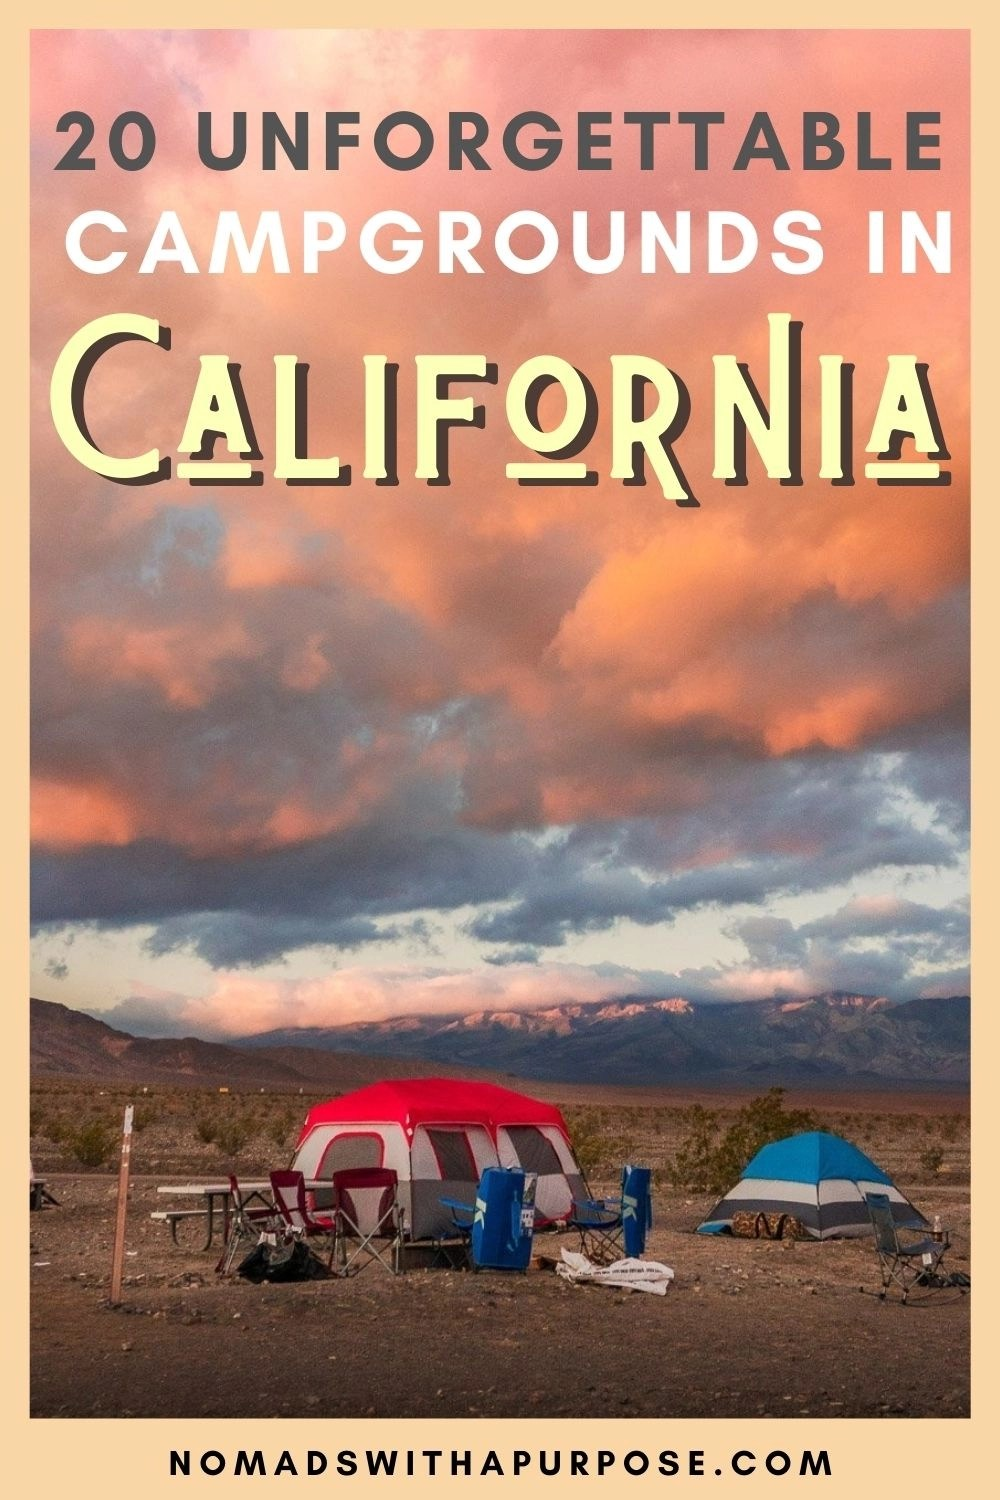 20 Unforgettable Campgrounds In California